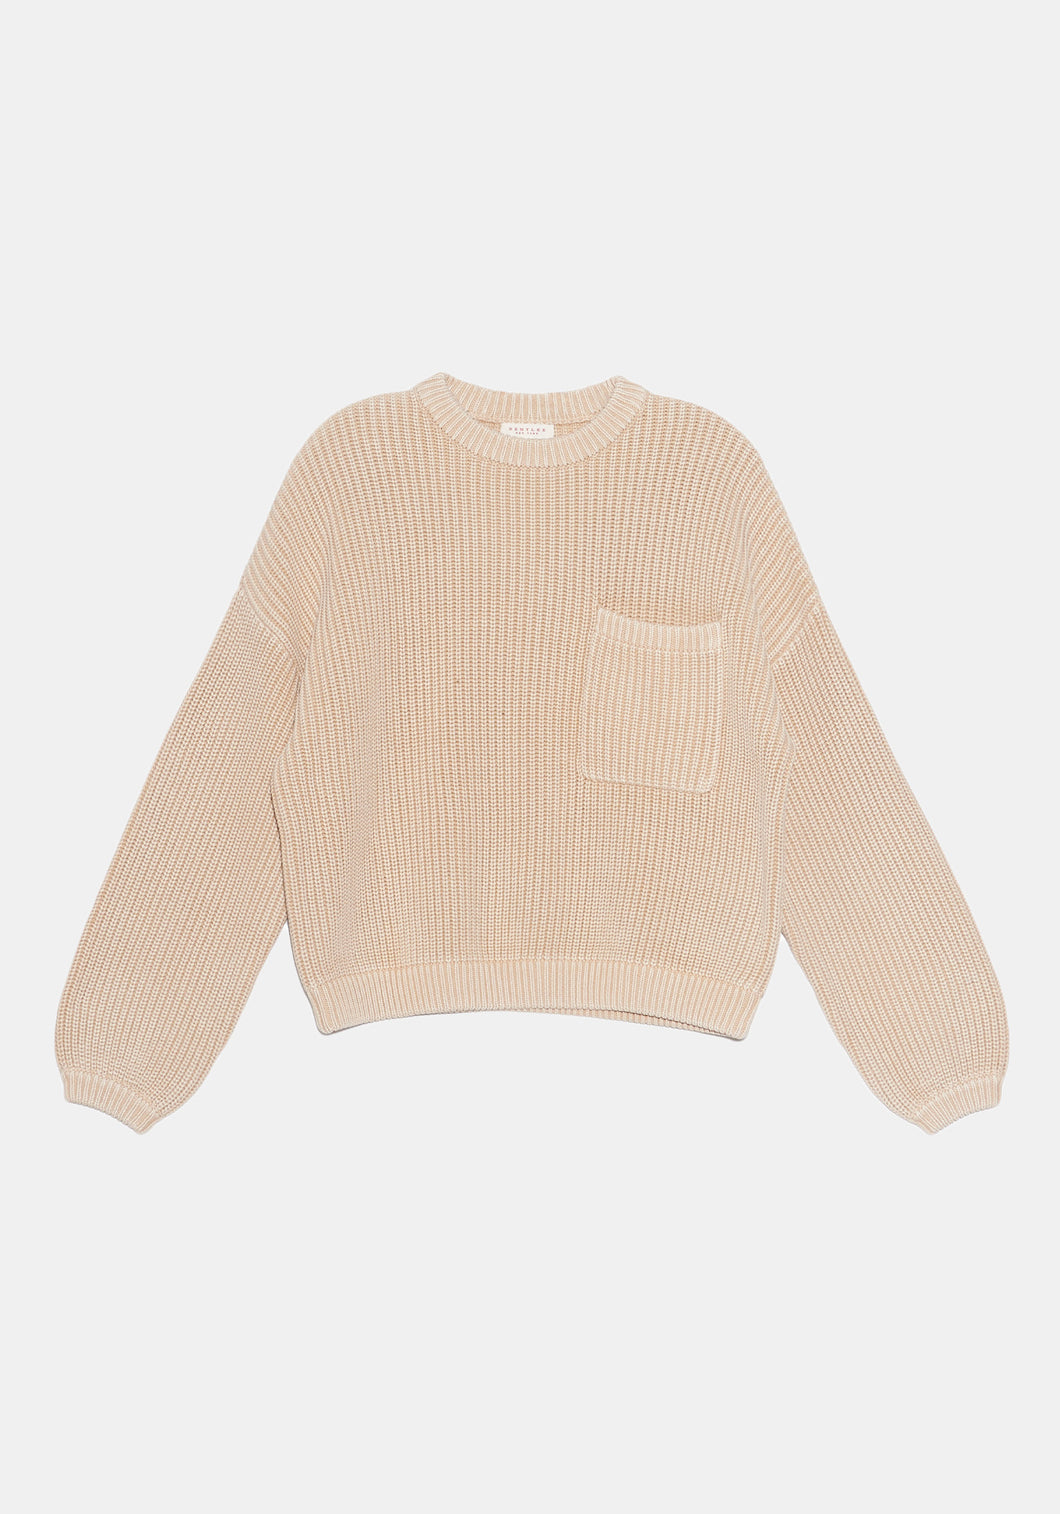 Grant Sweater - Vanilla